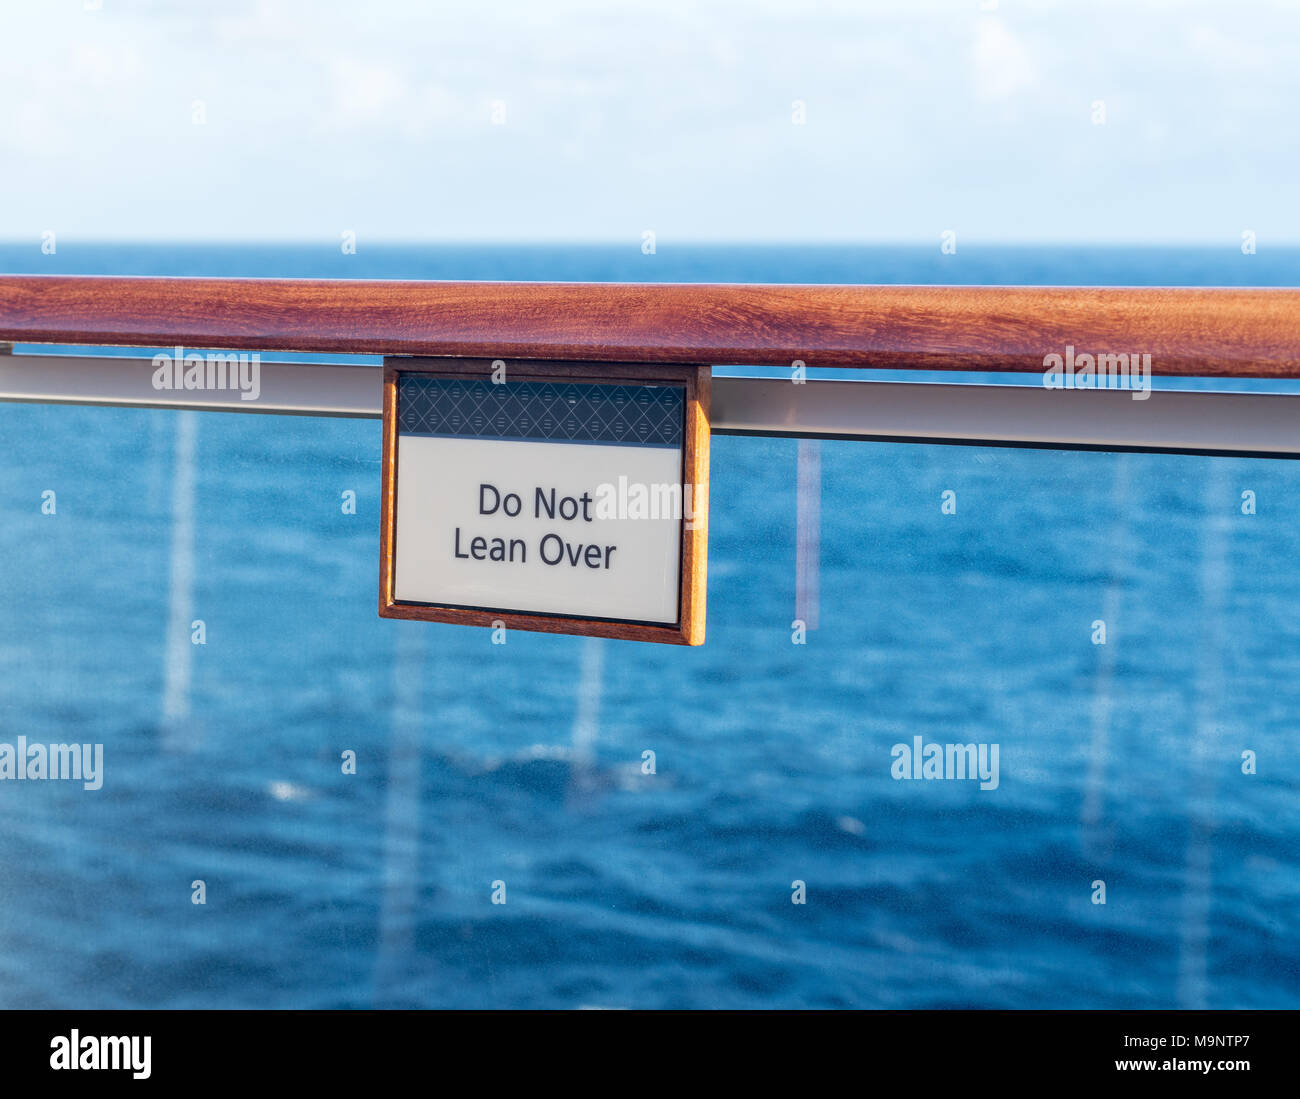 Do Not Lean Over warning sign on railing of cruise ship - Stock Image